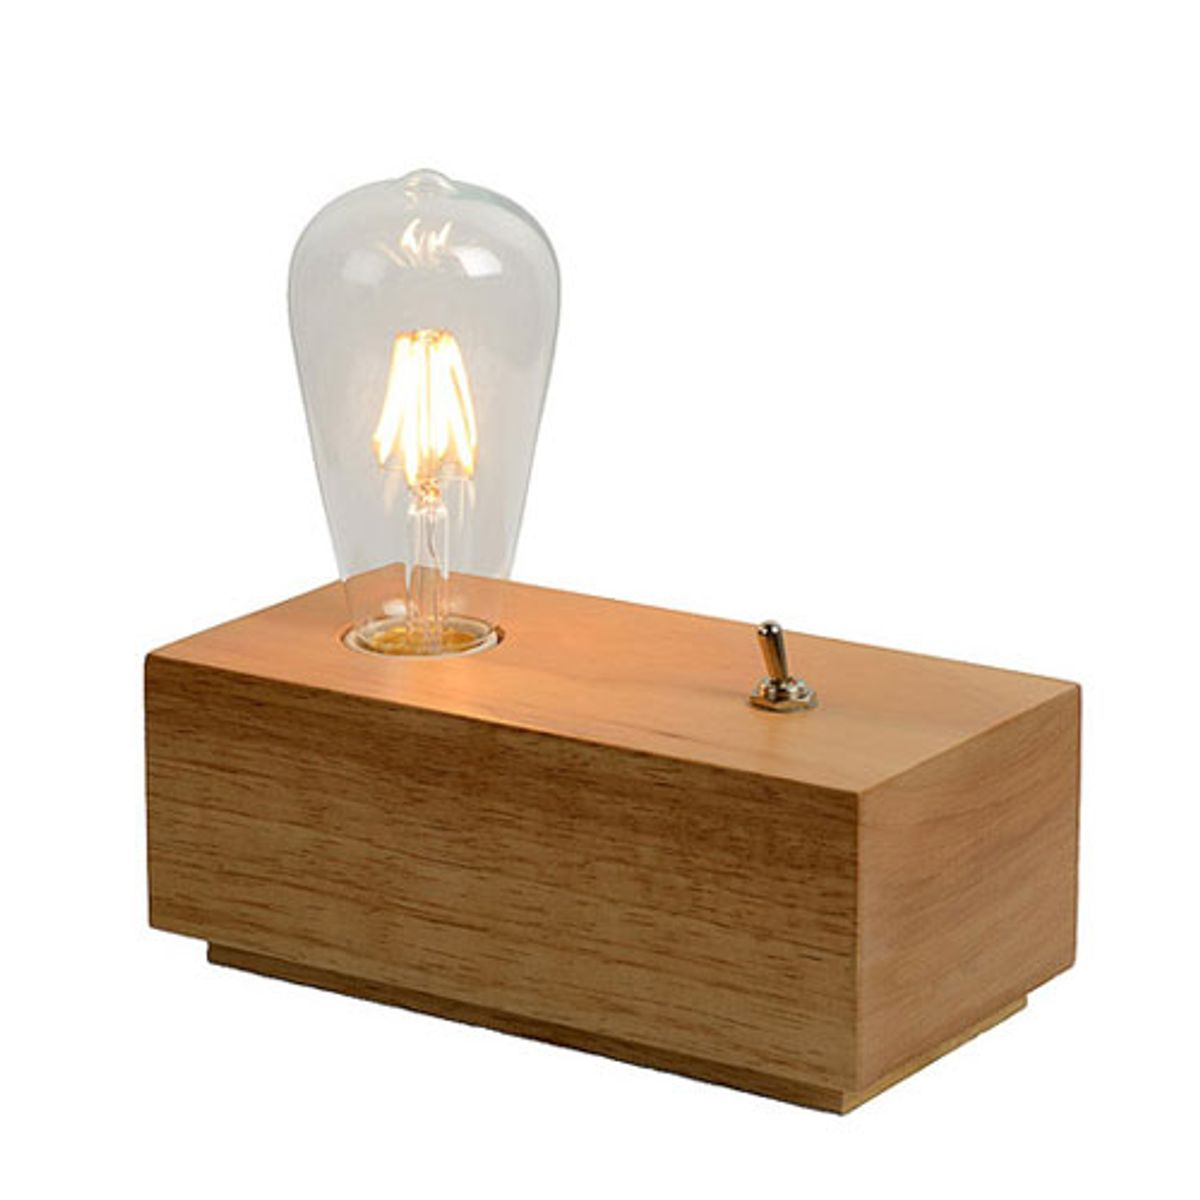 lampe poser socle en bois avec interrupteur edison lucide decoclico. Black Bedroom Furniture Sets. Home Design Ideas